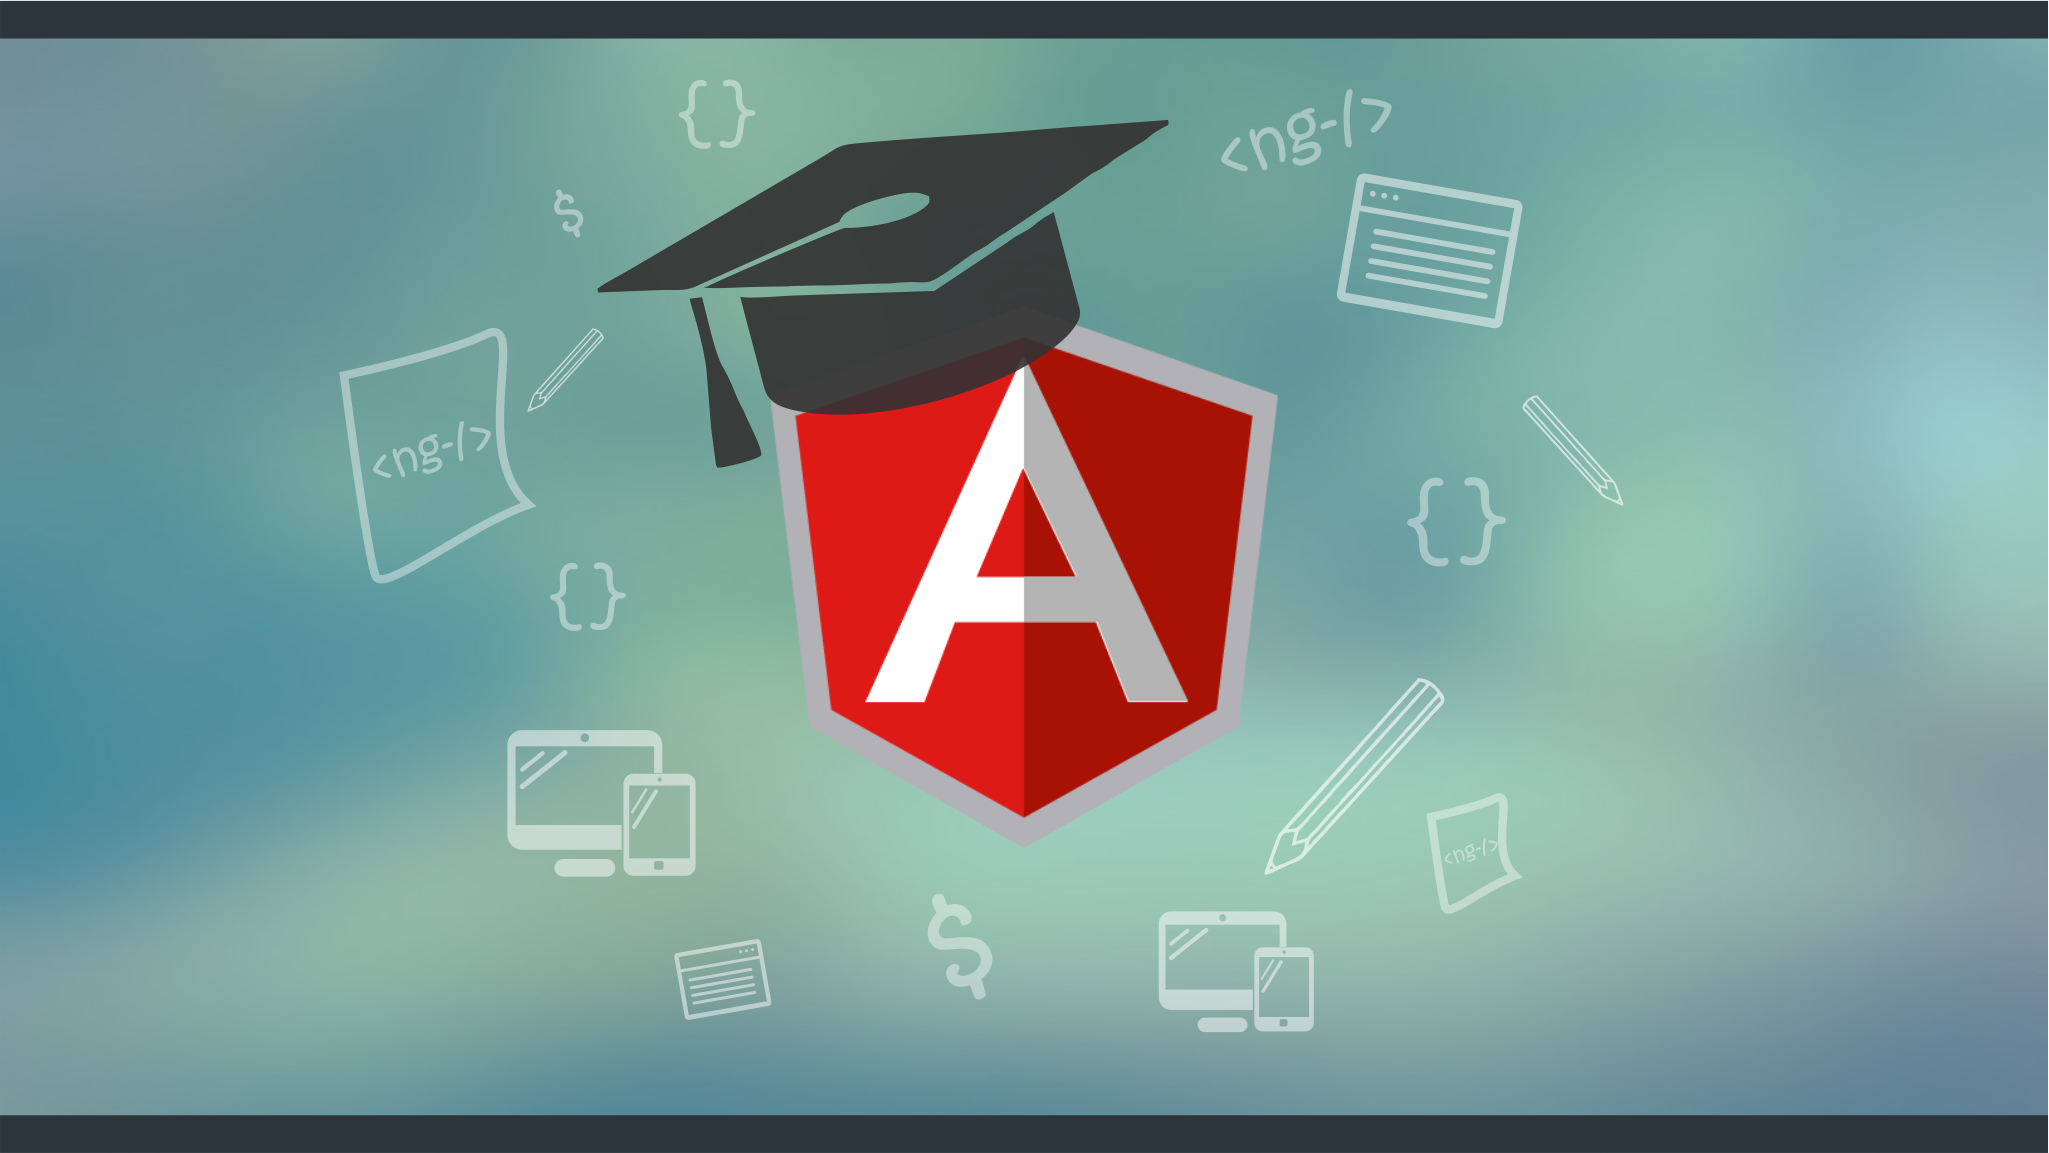 Master AngularJS : Learn Angular JS From Scratch